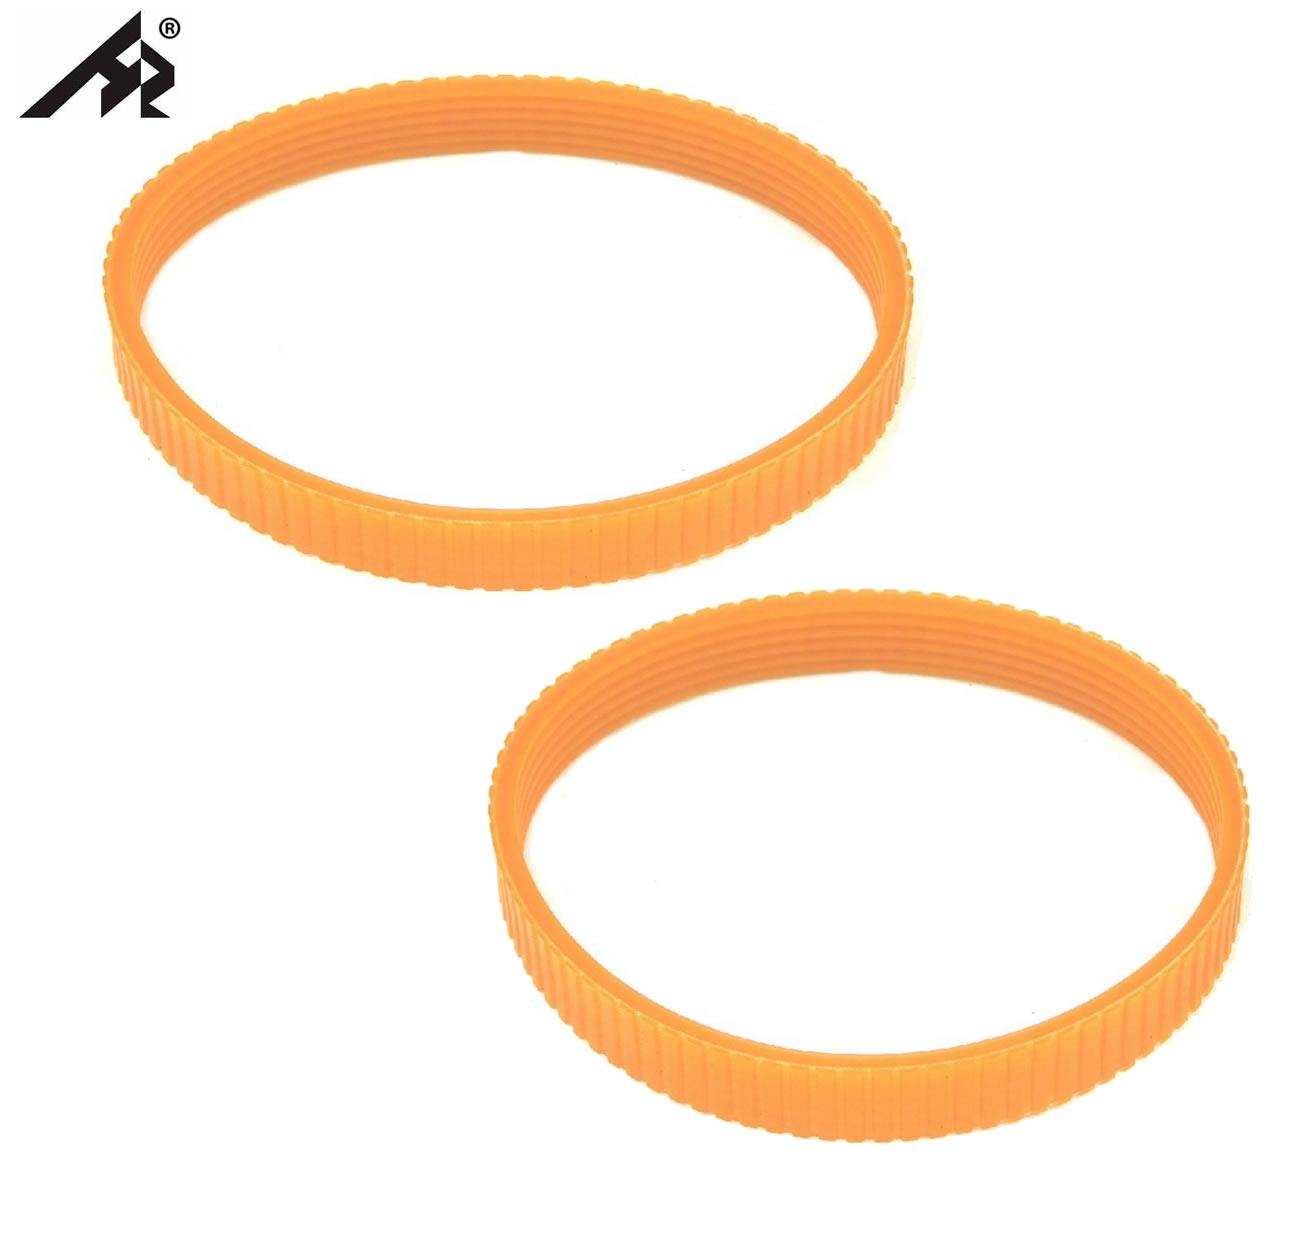 2PCS OEM Toothed Planer Drive Belt For Dewalt DW734 DW734R Replacement Belt 9 Ribs